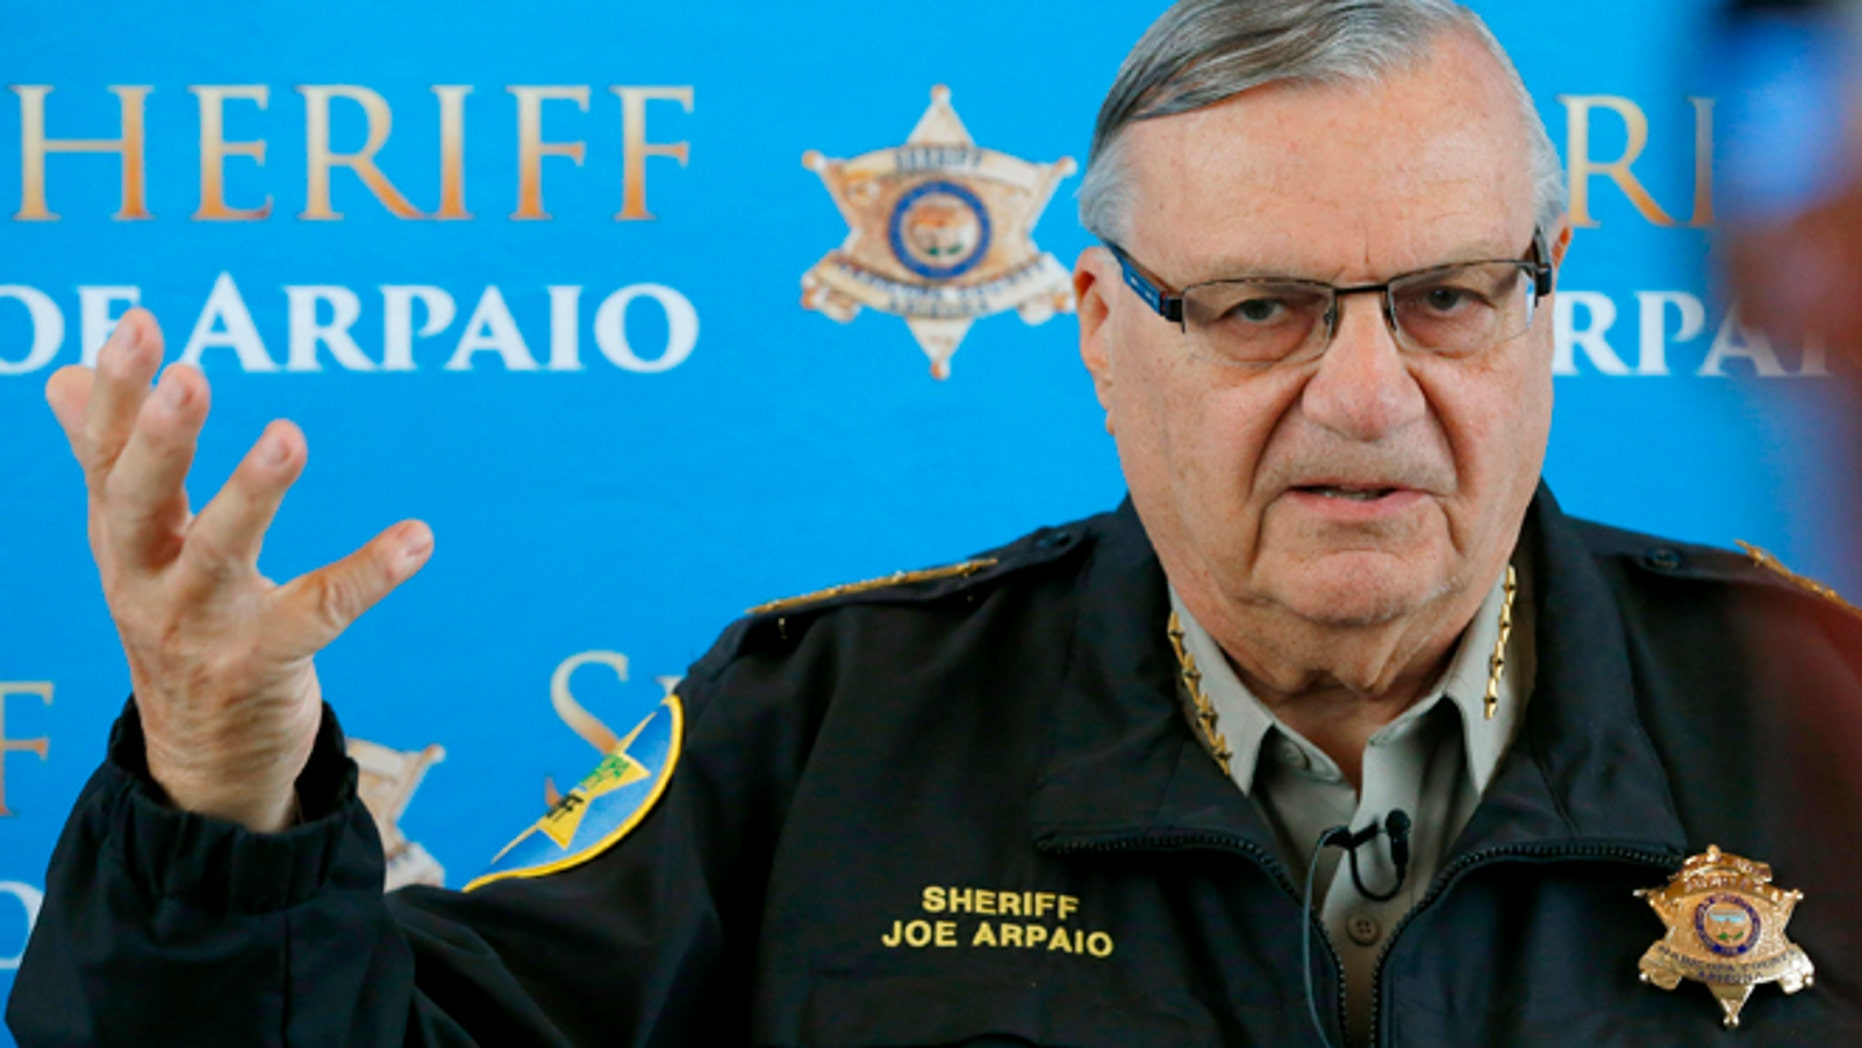 FILE - In this Dec. 18, 2013 file photo, Maricopa County Sheriff Joe Arpaio announces dozens of arrests in a prostitution sting during a news conference at Maricopa County Sheriff's Office Headquarters, in Phoenix. Arpaio and his top aide Chief Deputy Jerry Sheridan are required to appear before a federal judge who believes the two have mischaracterized and trivialized the judge's key findings in a racial-profiling decision issued in 2013 against the police agency. The sheriff's office will be required to provide answers Monday, March 24, 2014 to U.S. District Judge Murray Snow about an Oct. 18 training session in which the judge said Sheridan appears to suggest that rank-and-file deputies weren't obliged to make their best efforts to remedy the agency's constitutional violations. (AP Photo/Ross D. Franklin, File)